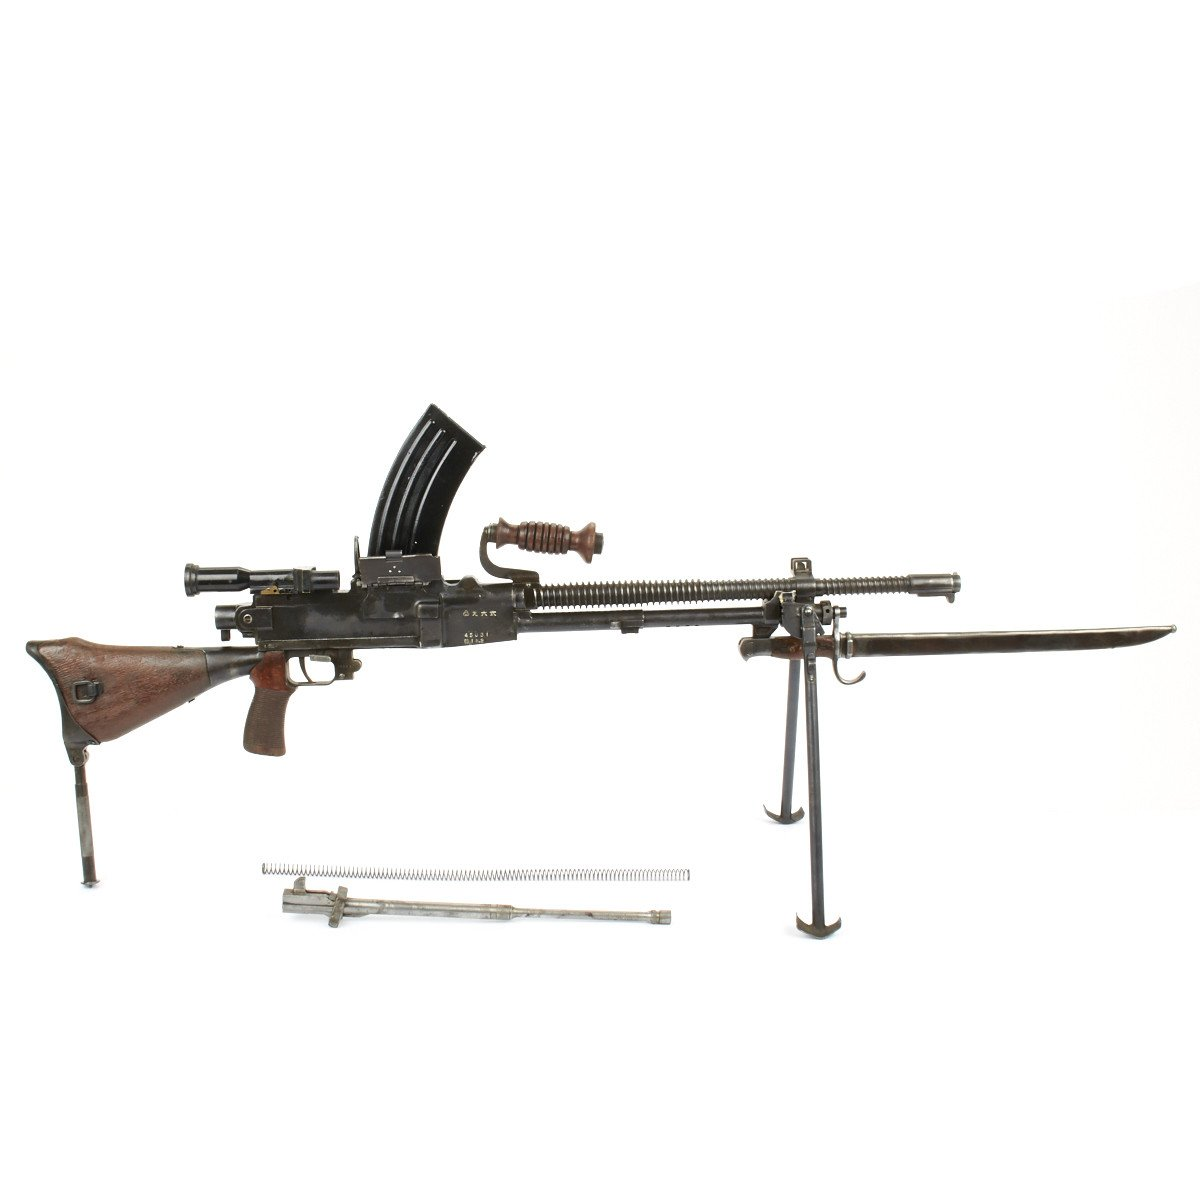 Original WWII Japanese Type 96 Display LMG with Optical Scope